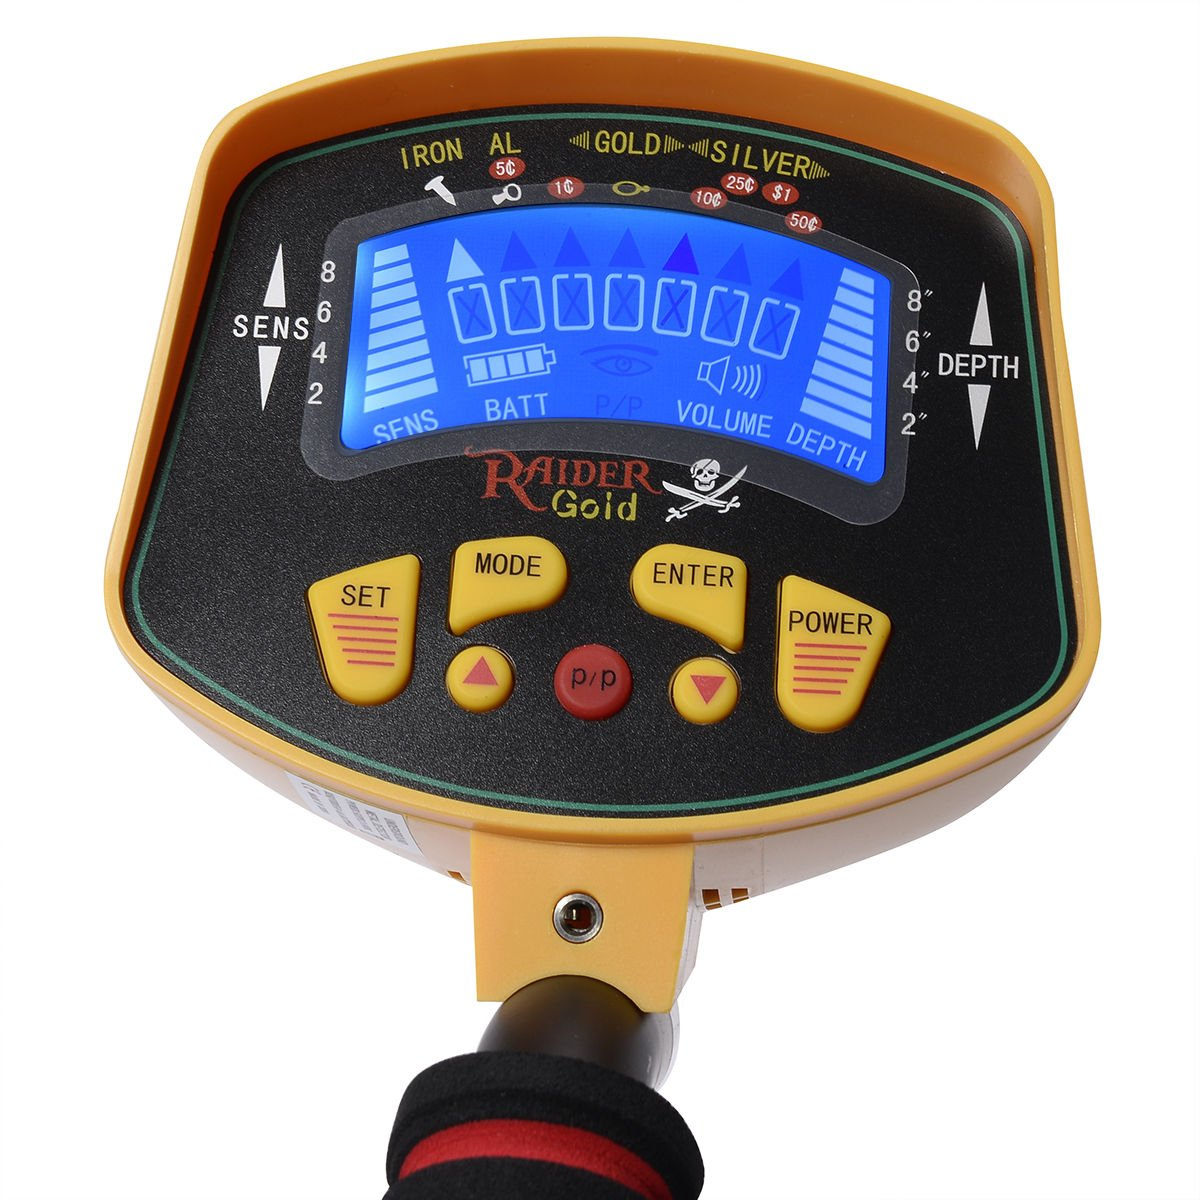 COLIBROX--New MD-3010II Metal Detector Gold Digger Deep Sensitive Light Hunter LCD Display Material: ABS Dimension: 21.26x13.58x5.9inches/540x345x150mm Diameter Of The Detector Plate:8'' Power: 6 X 1.5 by COLIBROX